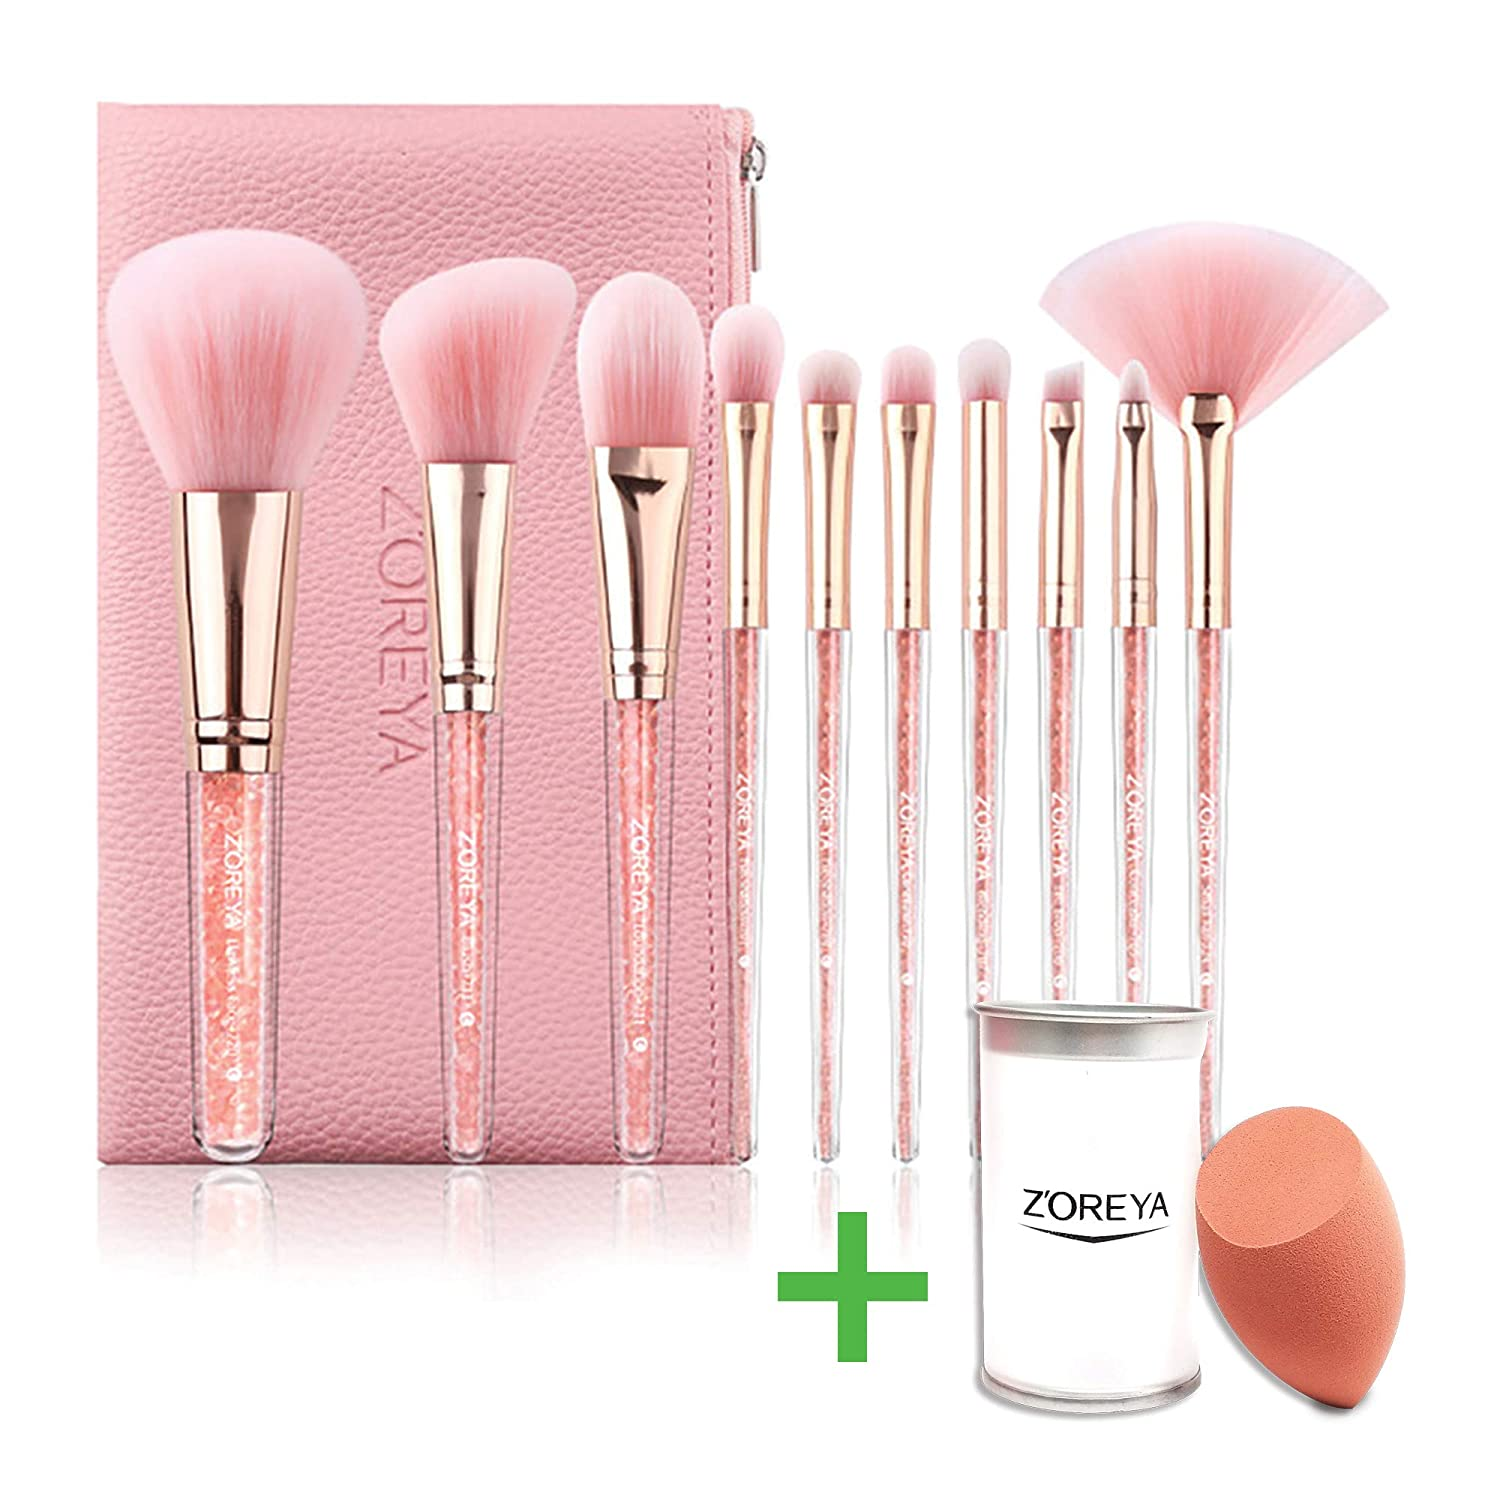 Highend Makeup Brushes Crystal Handle Makeup Brush Set 10pcs Best Make up tools Women, Teens, Beginners, Professional Make up Artist with Free Makeup Sponge Beauty Blender Gift Set Bundle Best Gift